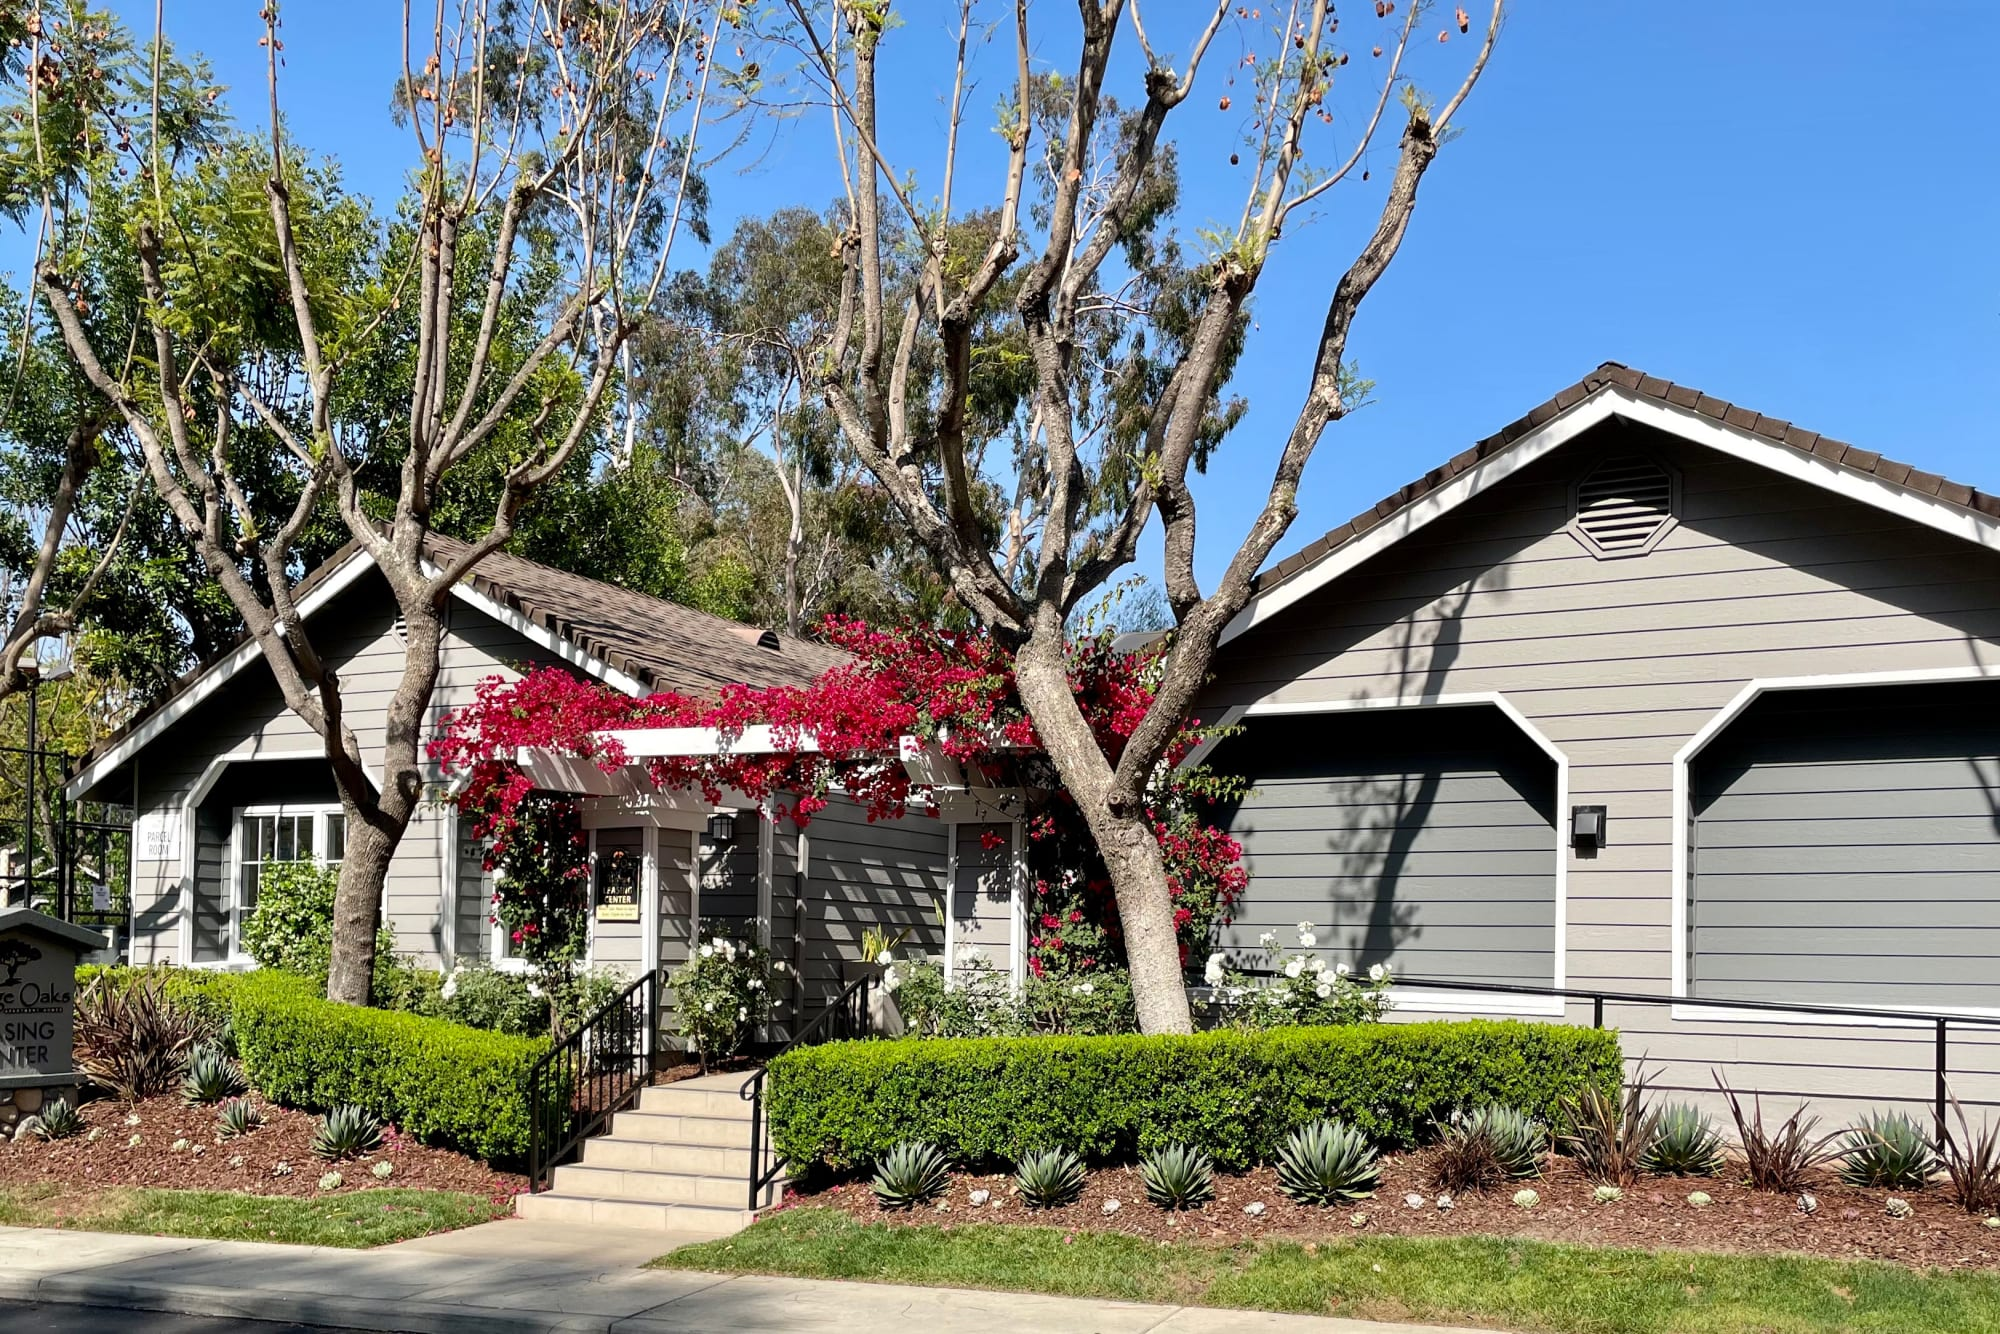 Office Exterior at Village Oaks in Chino Hills, California